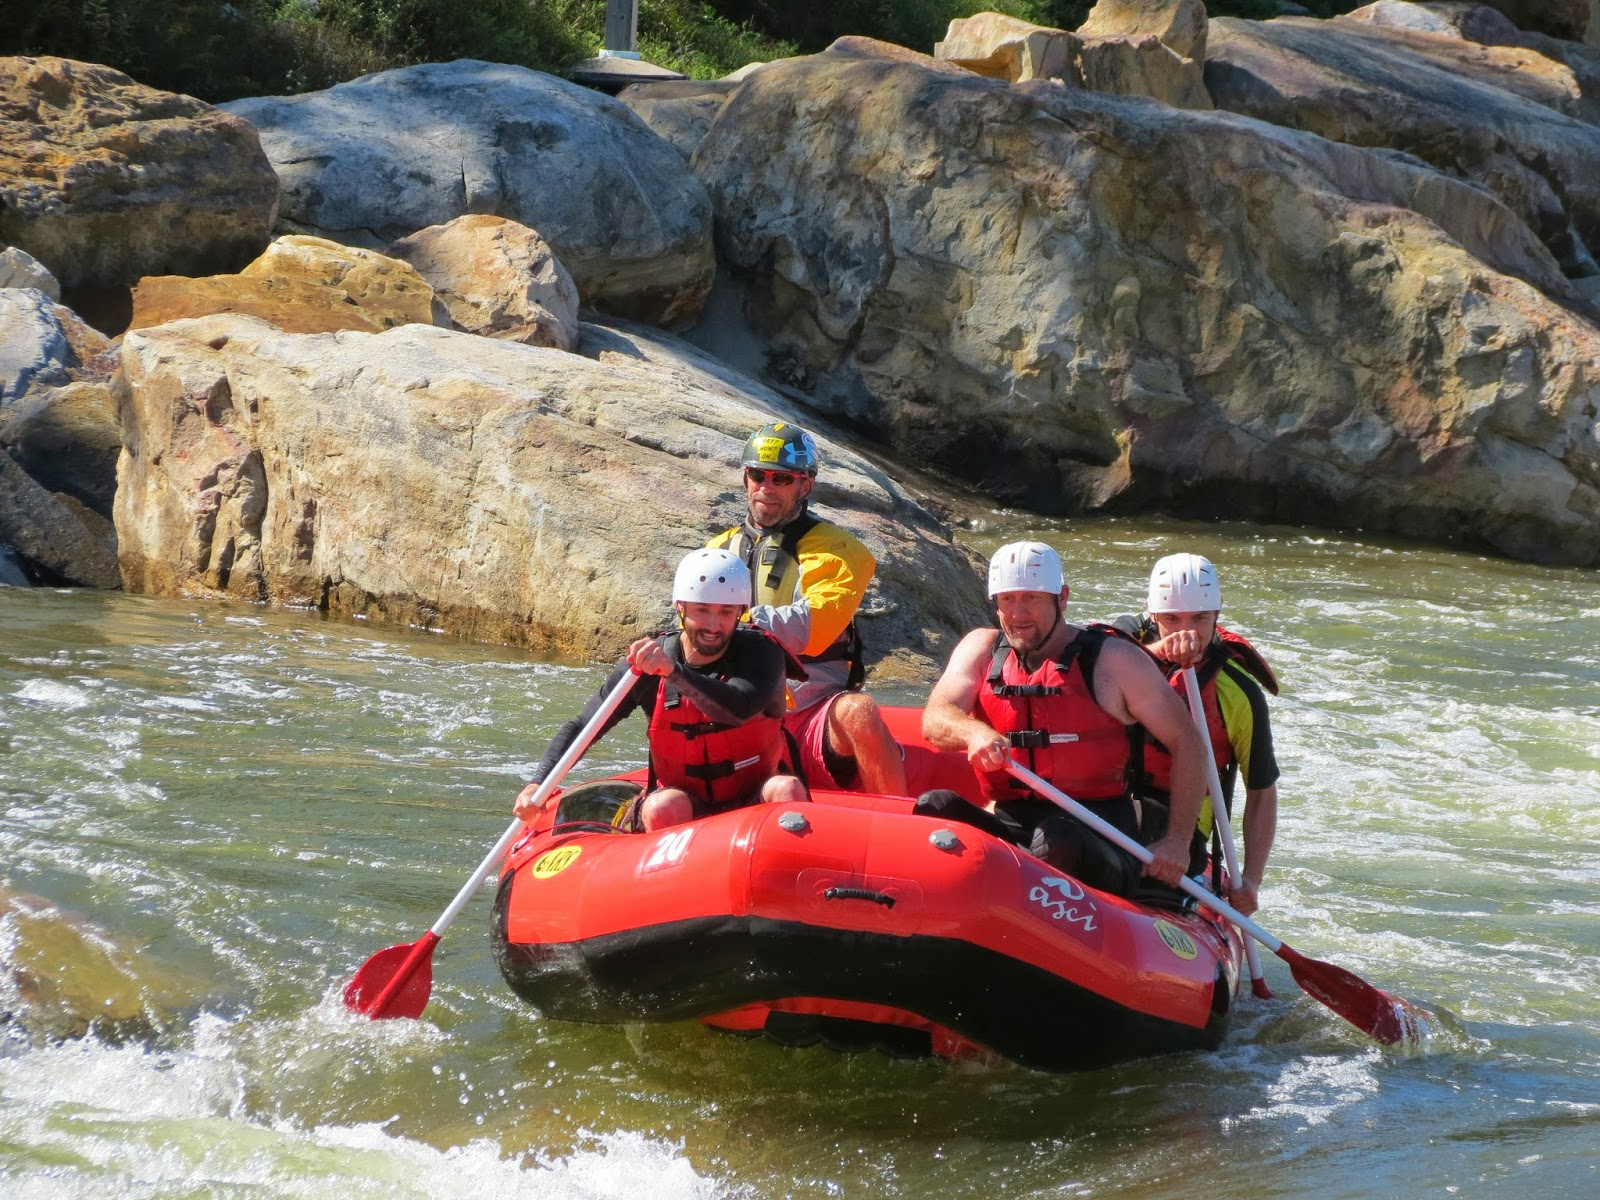 A whitewater rafting excursion! – Taylor-Made Deep Creek